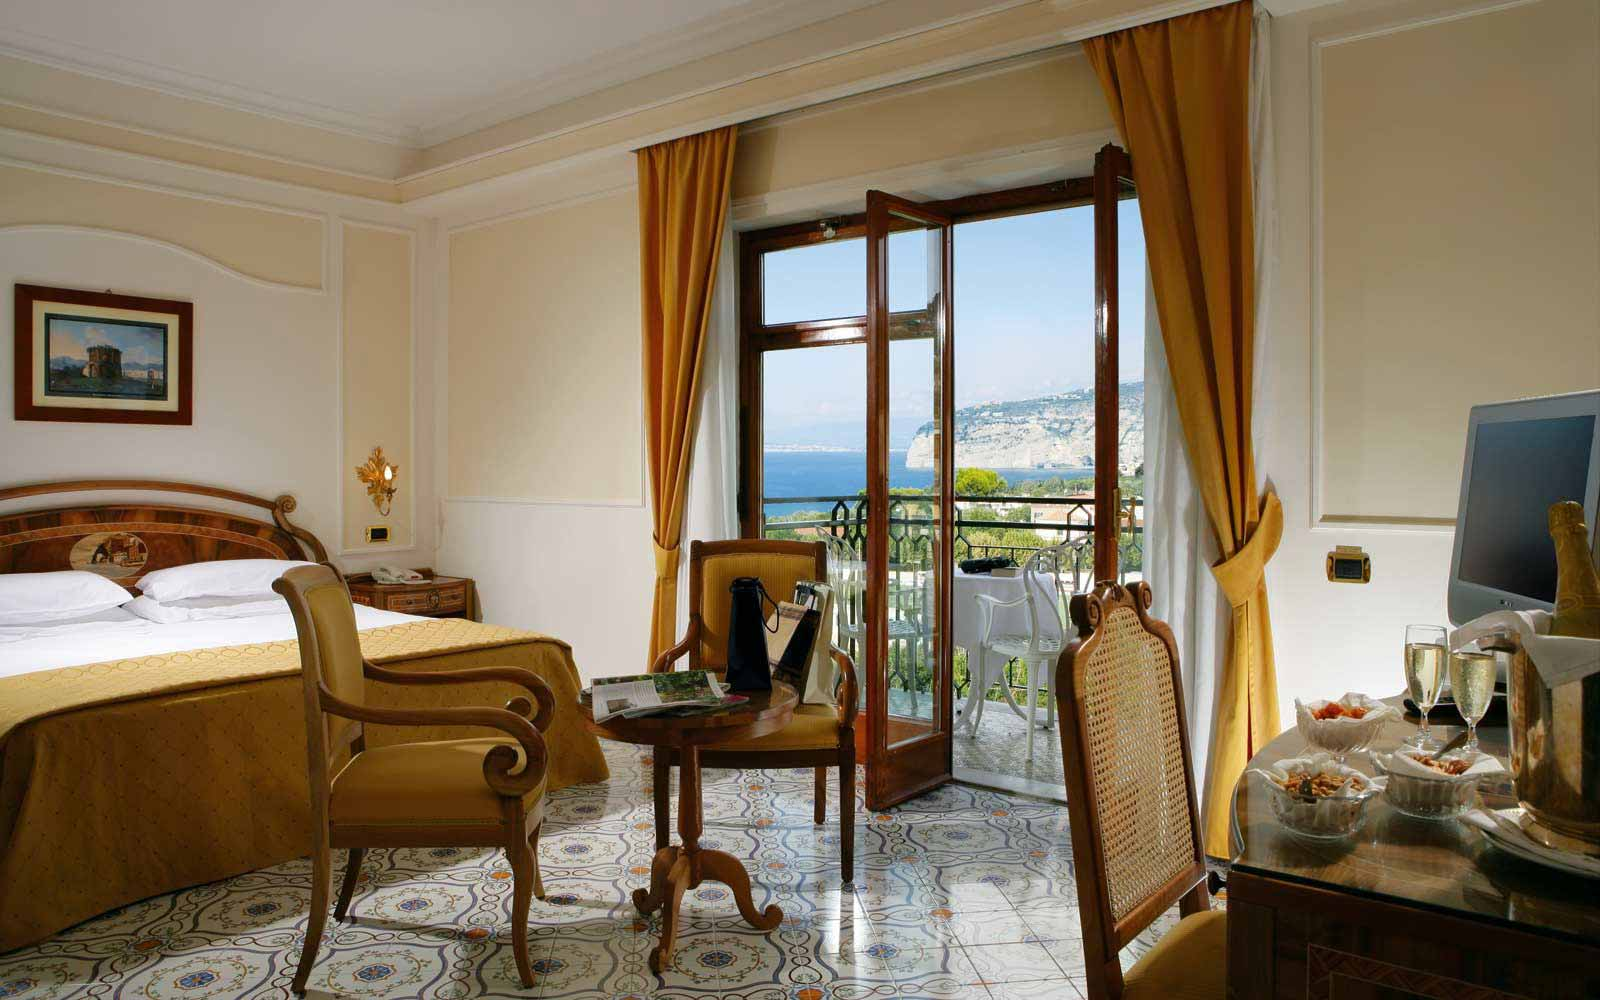 Double Room with a Balcony and partial Sea View at Grand Hotel de la Ville